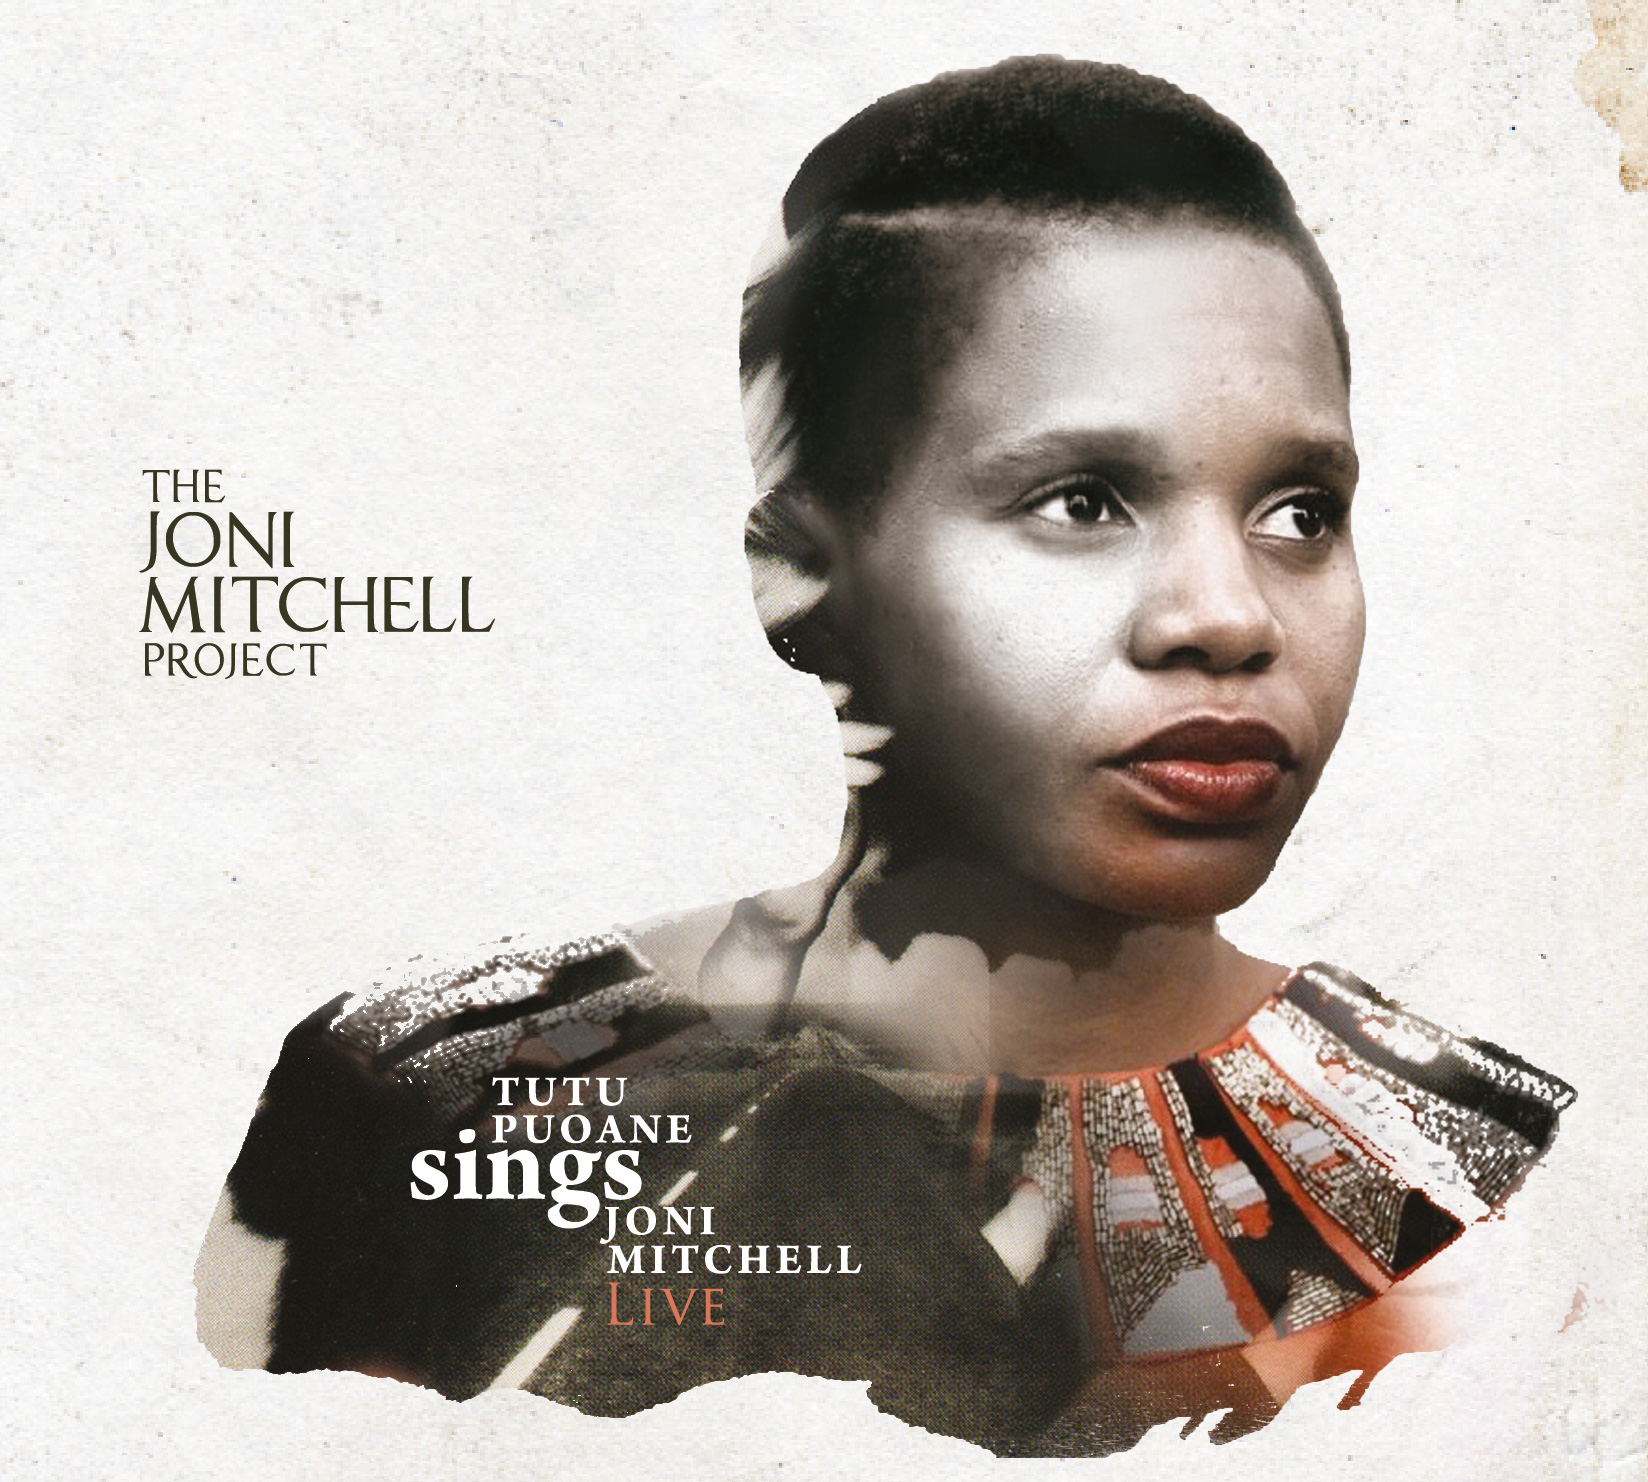 The Joni Mitchell Project